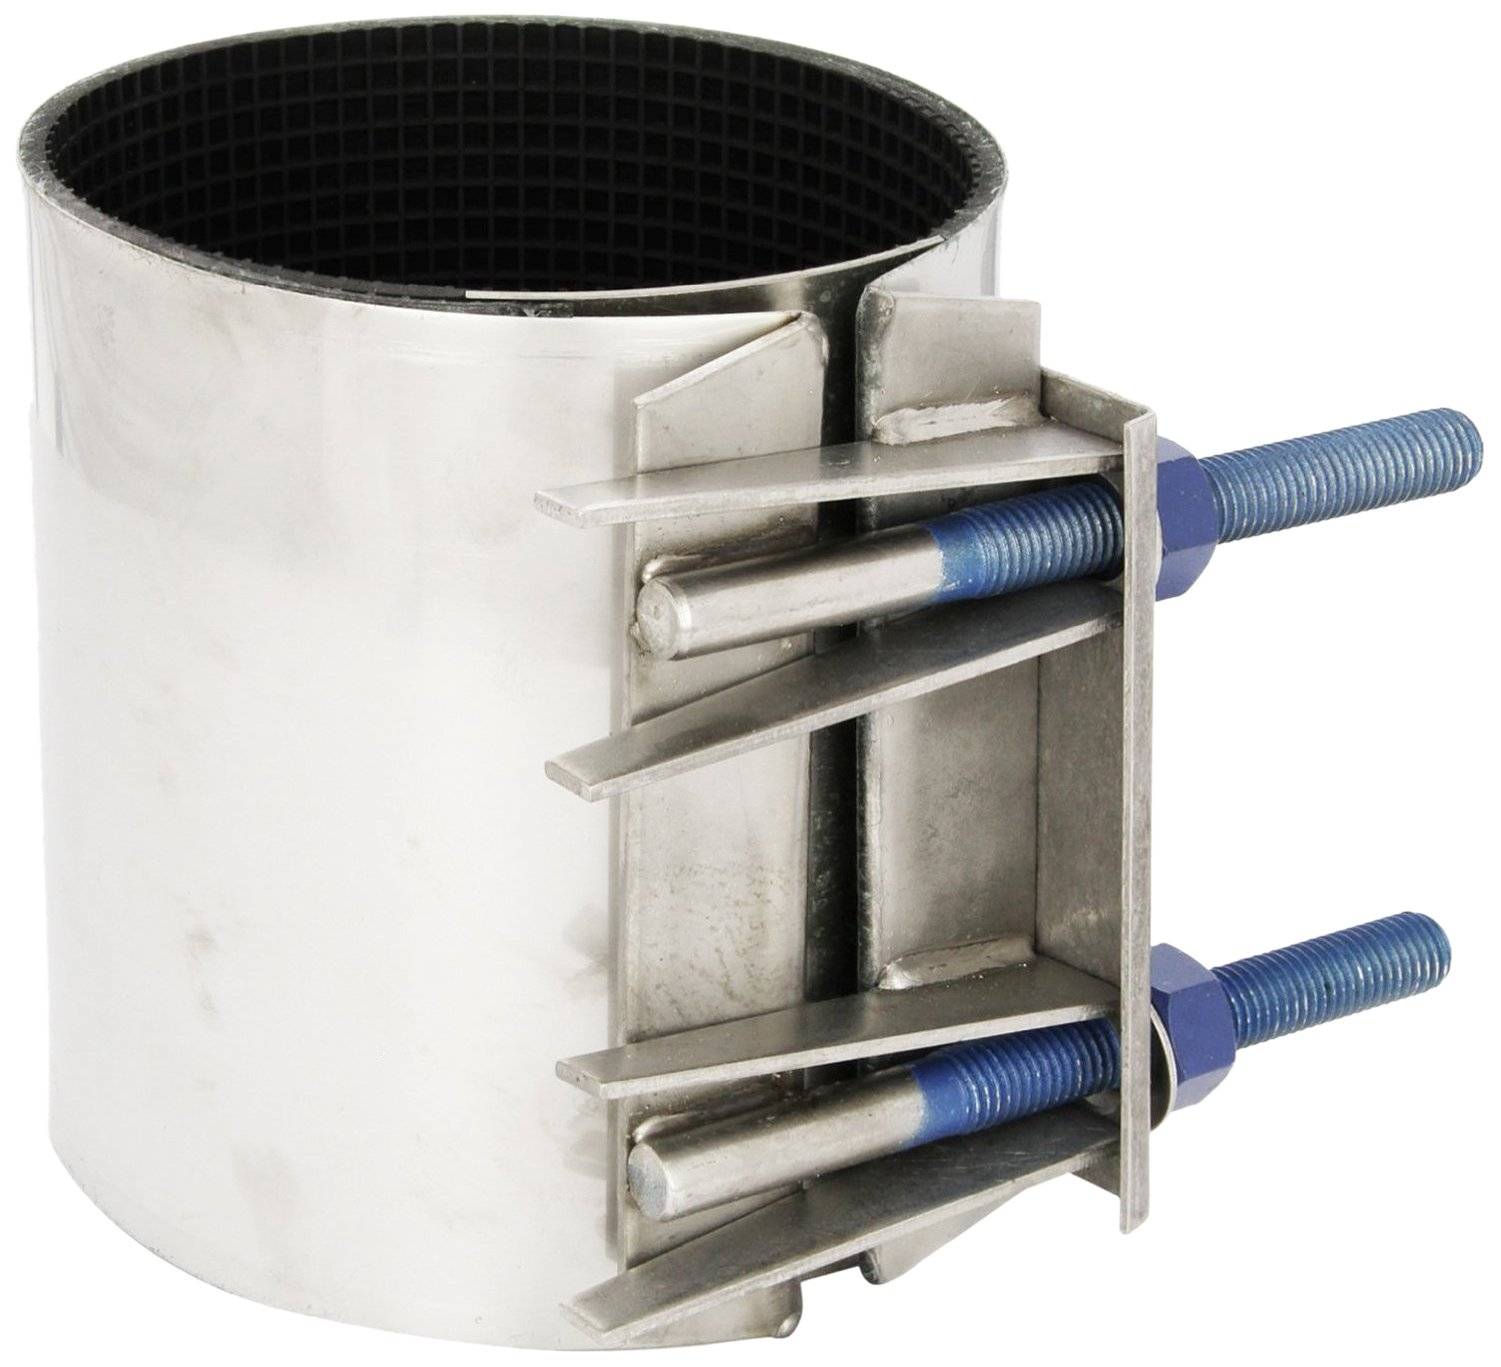 Smith-Blair Stainless Steel Repair Clamp, Full Circle, Stainless Steel Bolt, 2 Bolts, 7-1/2'' Length, 3'' Pipe Size